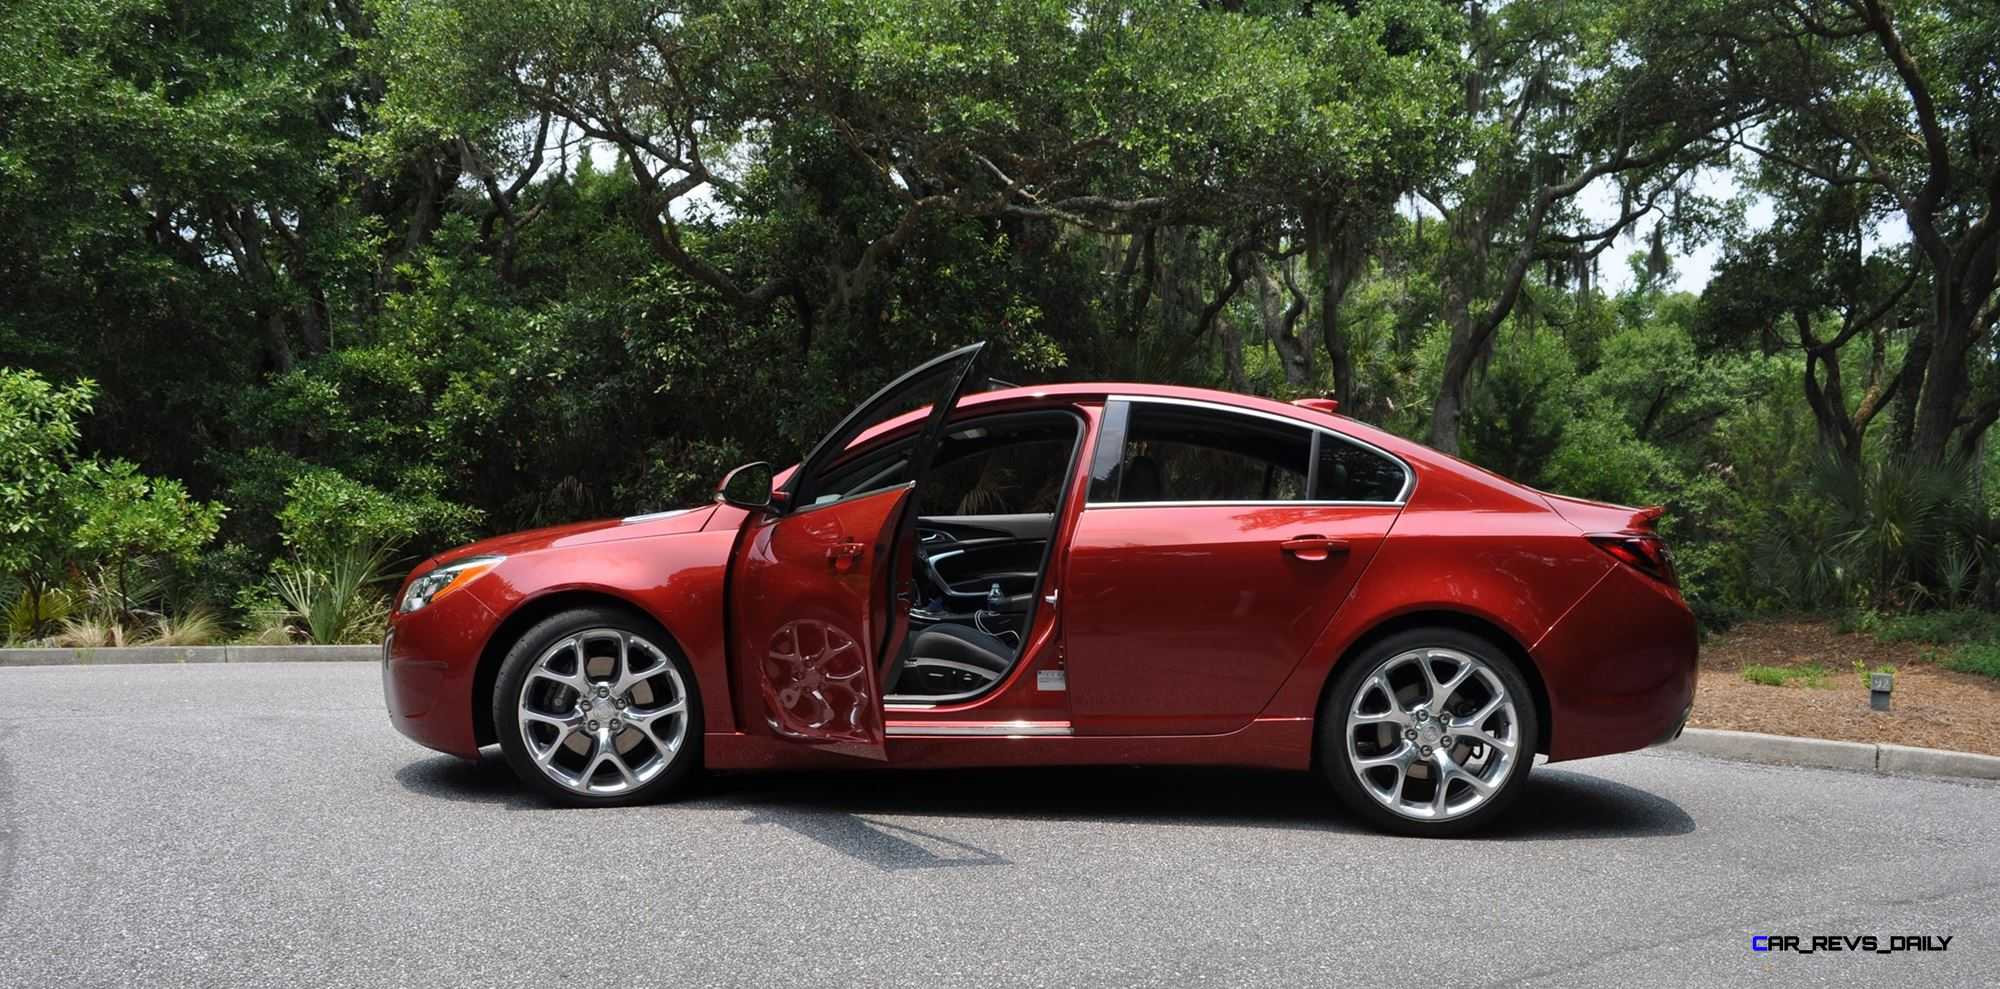 2015 buick regal gs awd review. Black Bedroom Furniture Sets. Home Design Ideas